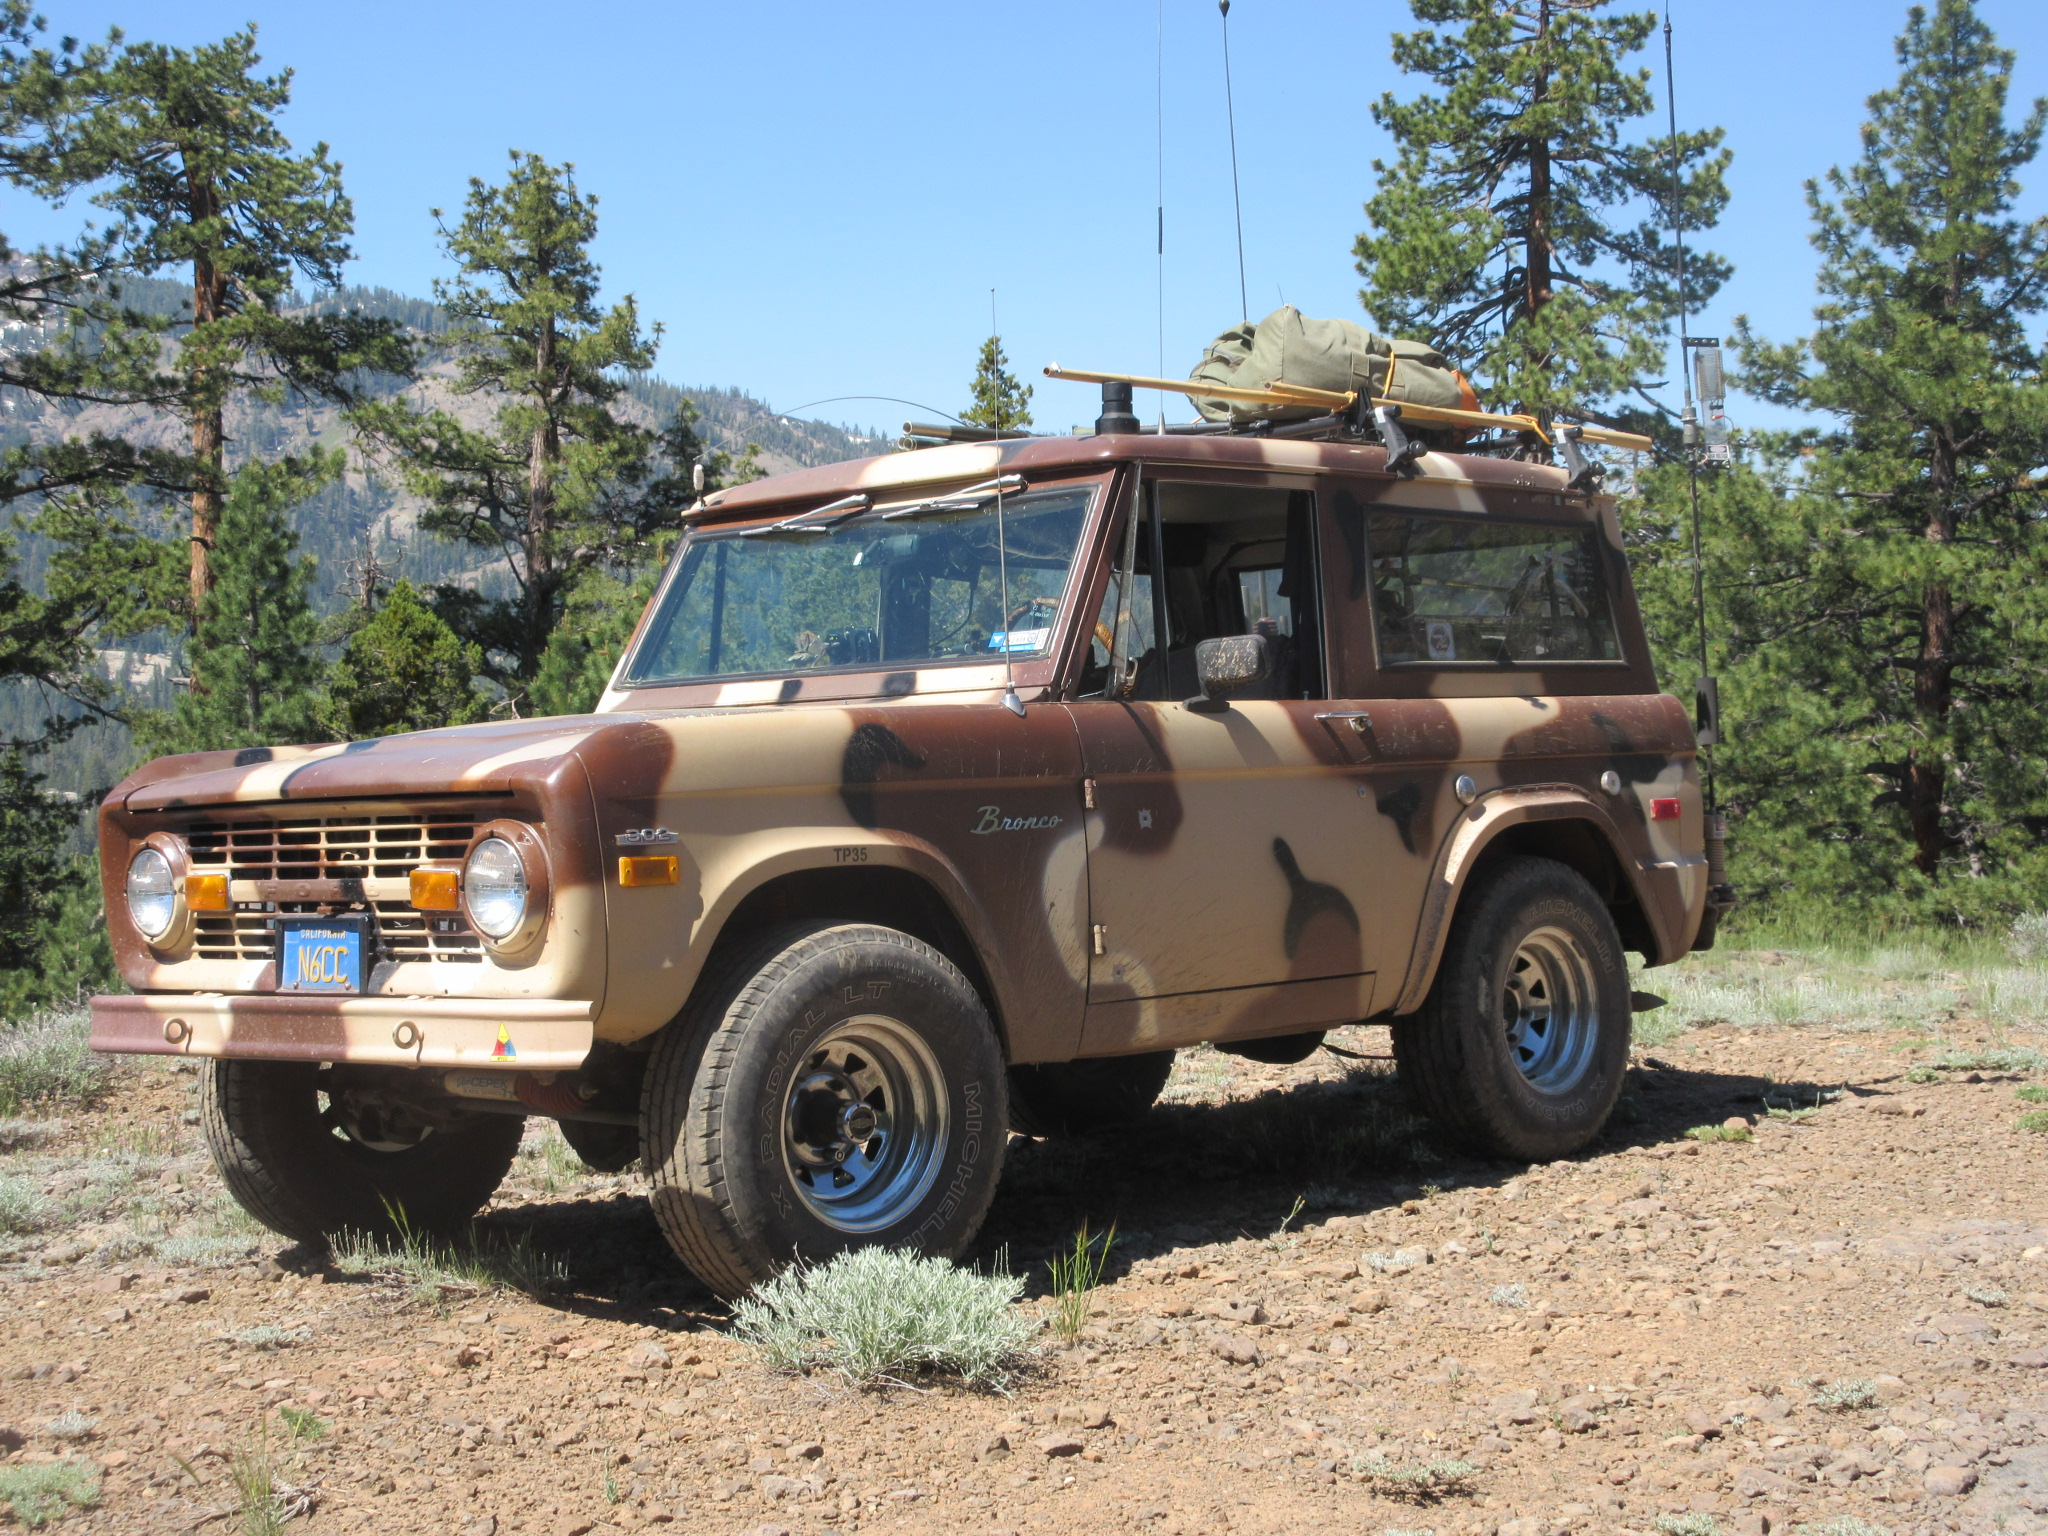 Camo Bronco in its element